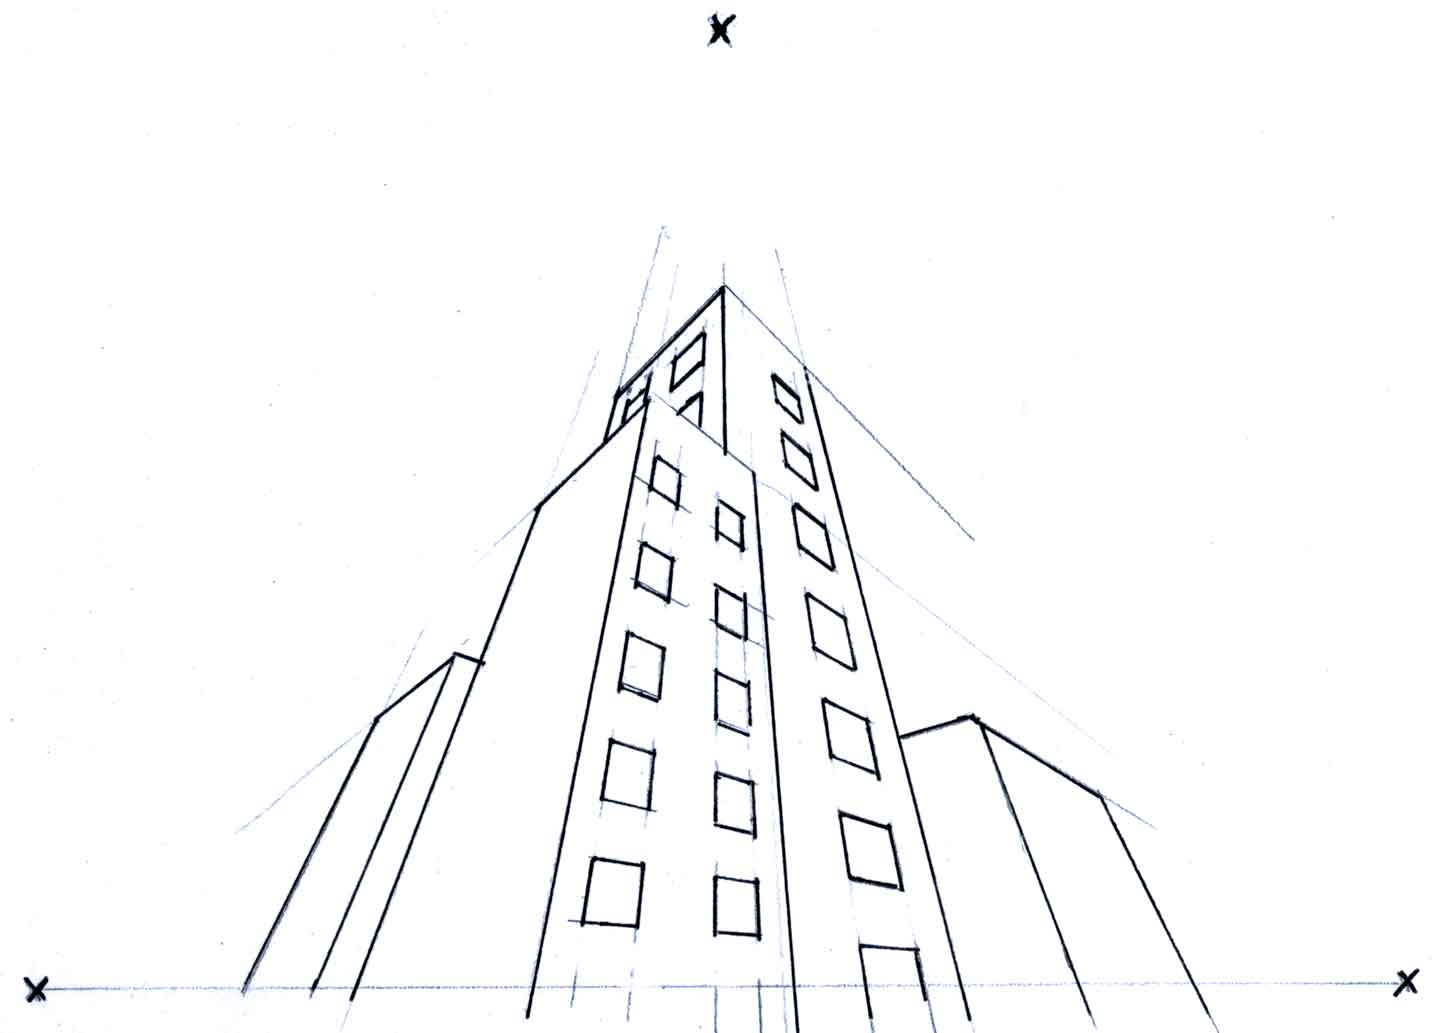 How To Draw Basic Perspective Art